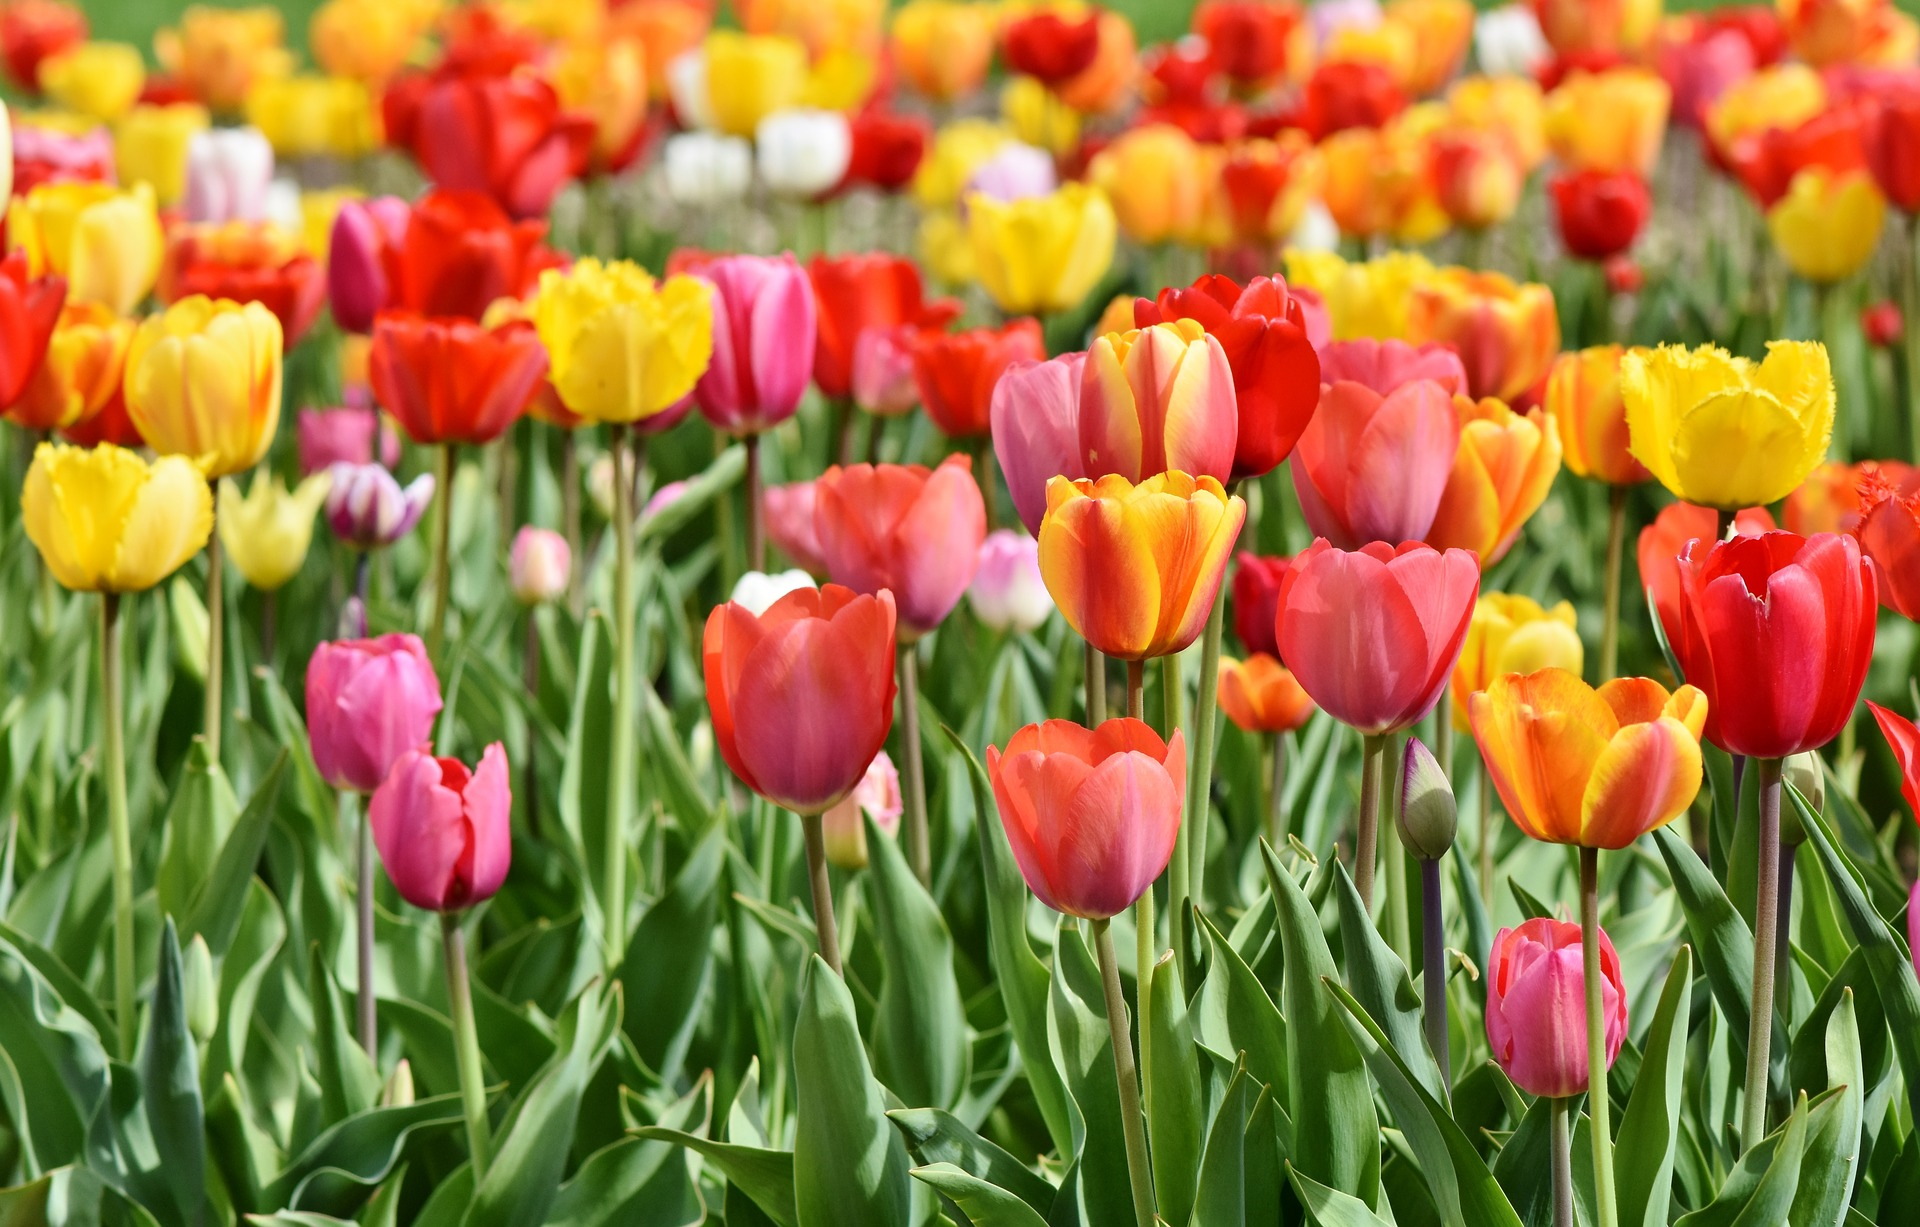 Tulip meanings